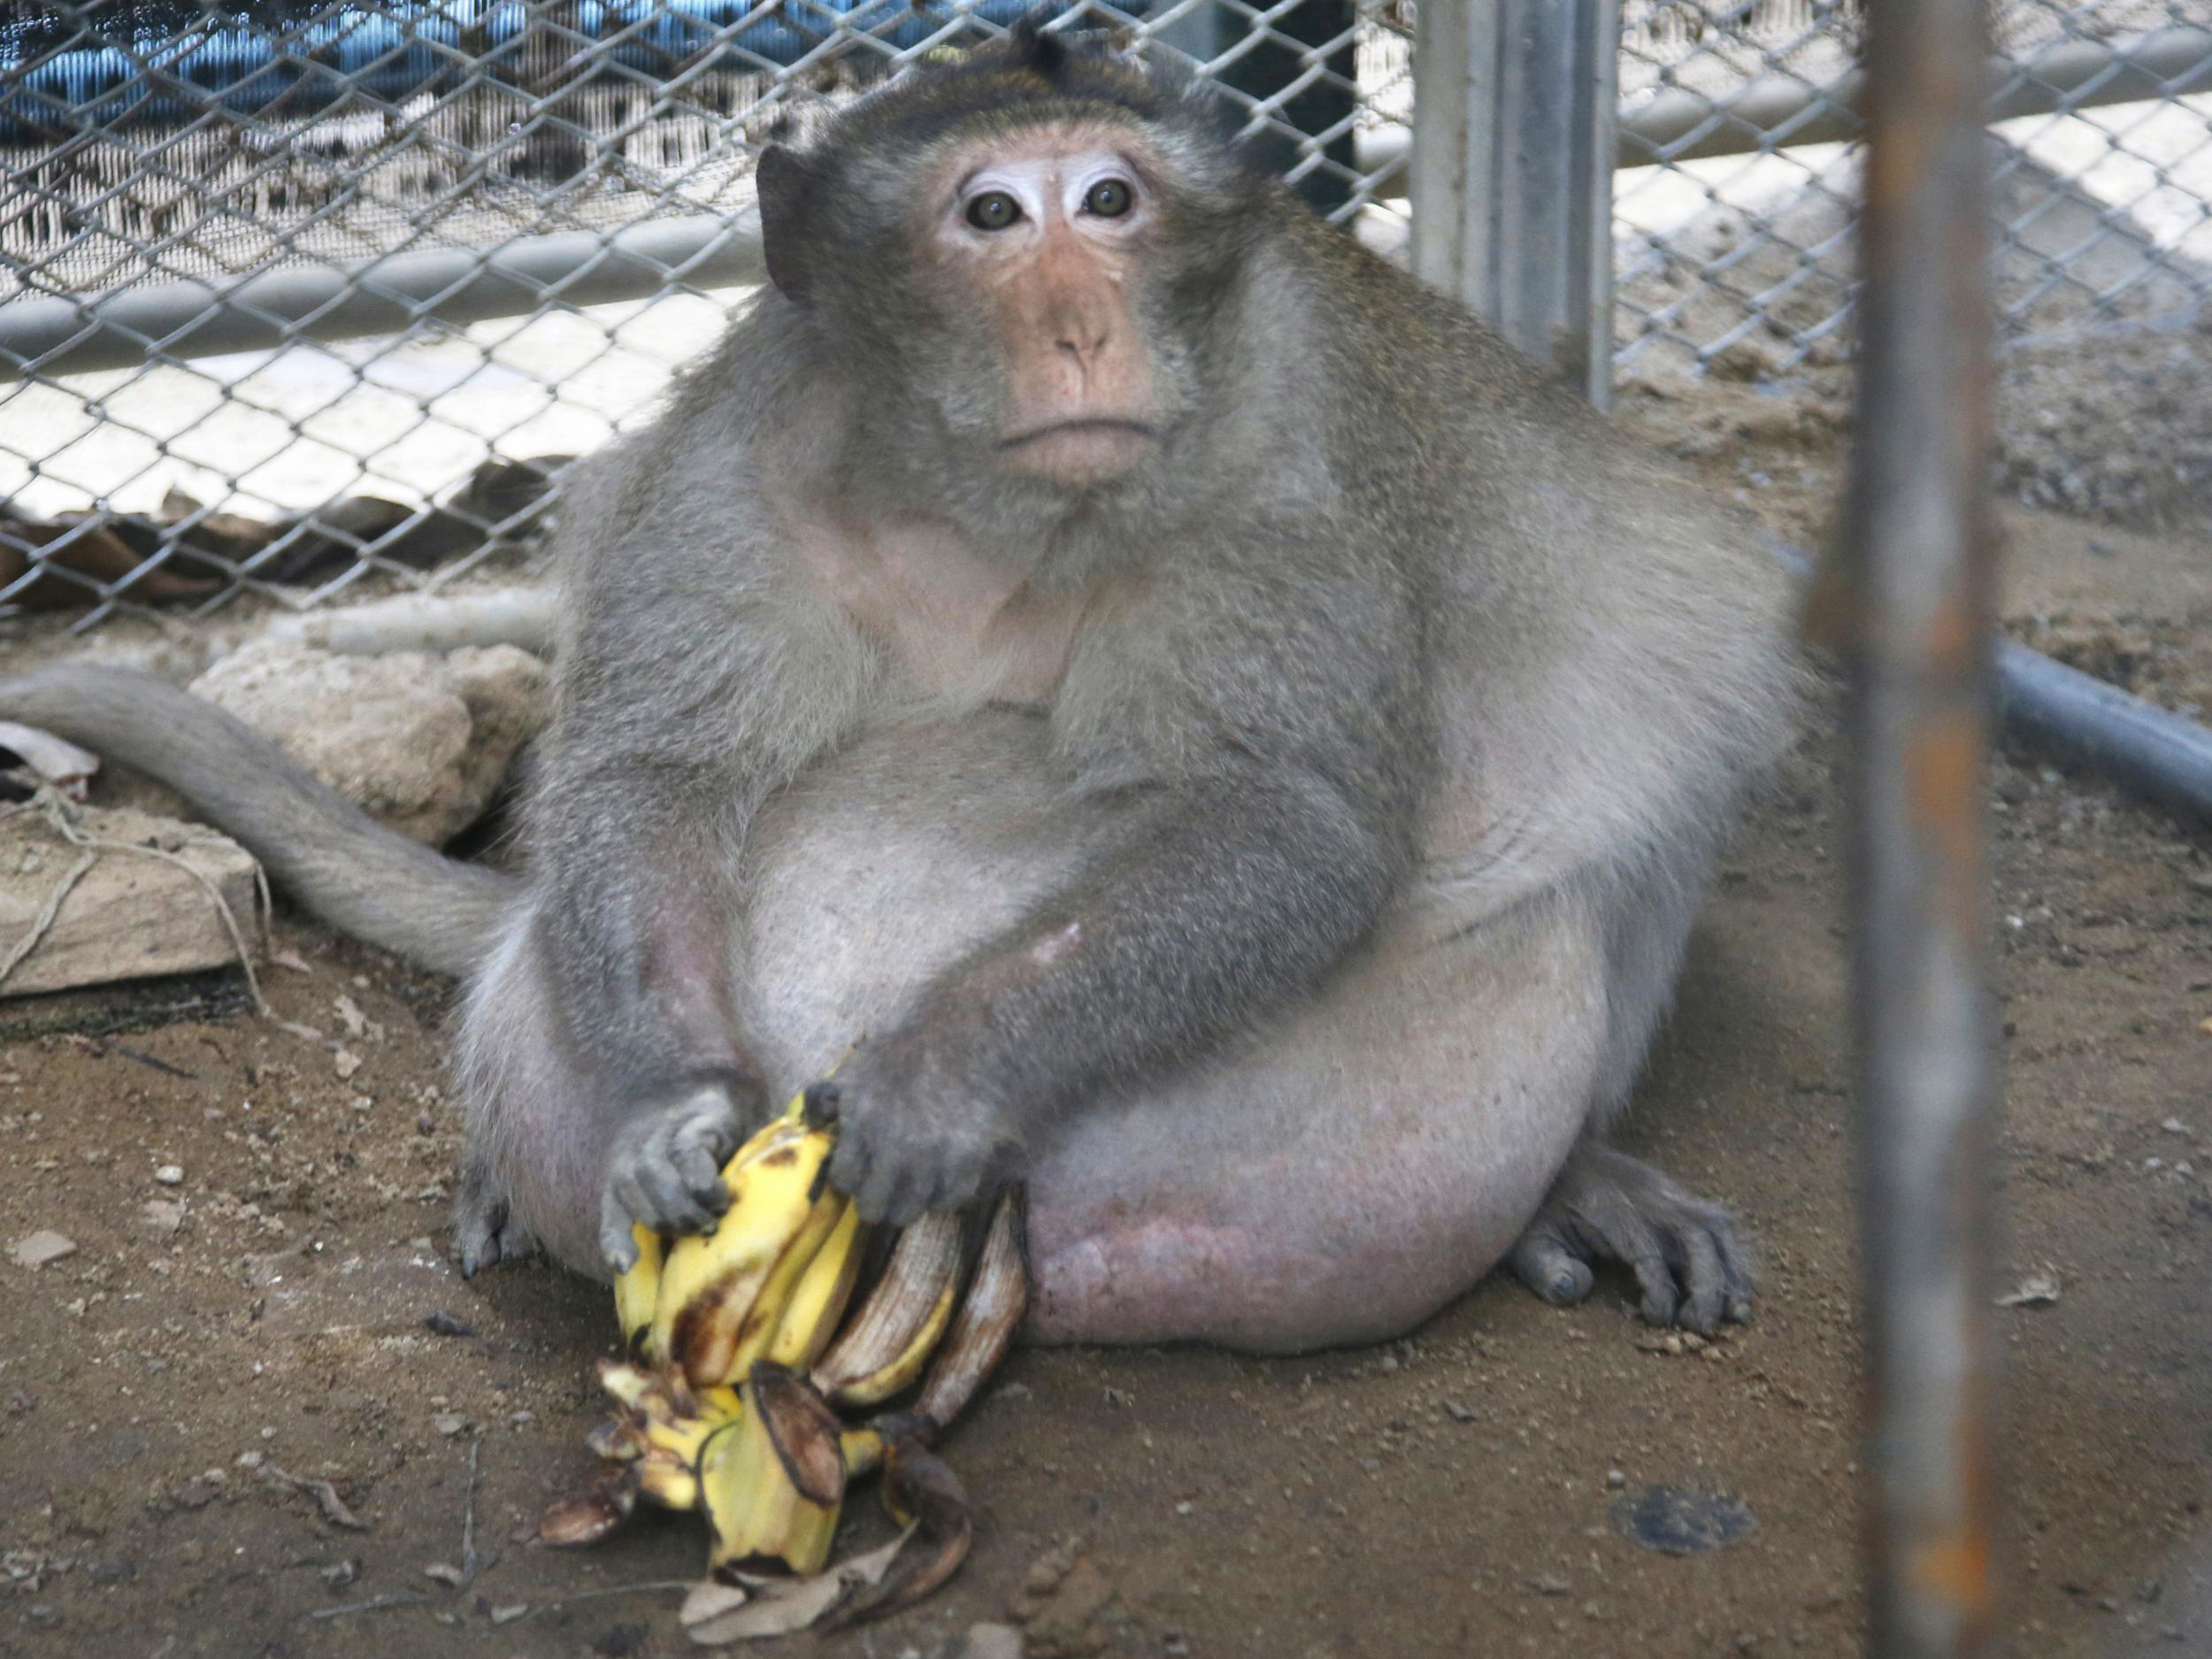 uncle fat the morbidly obese monkey placed on diet in thailand